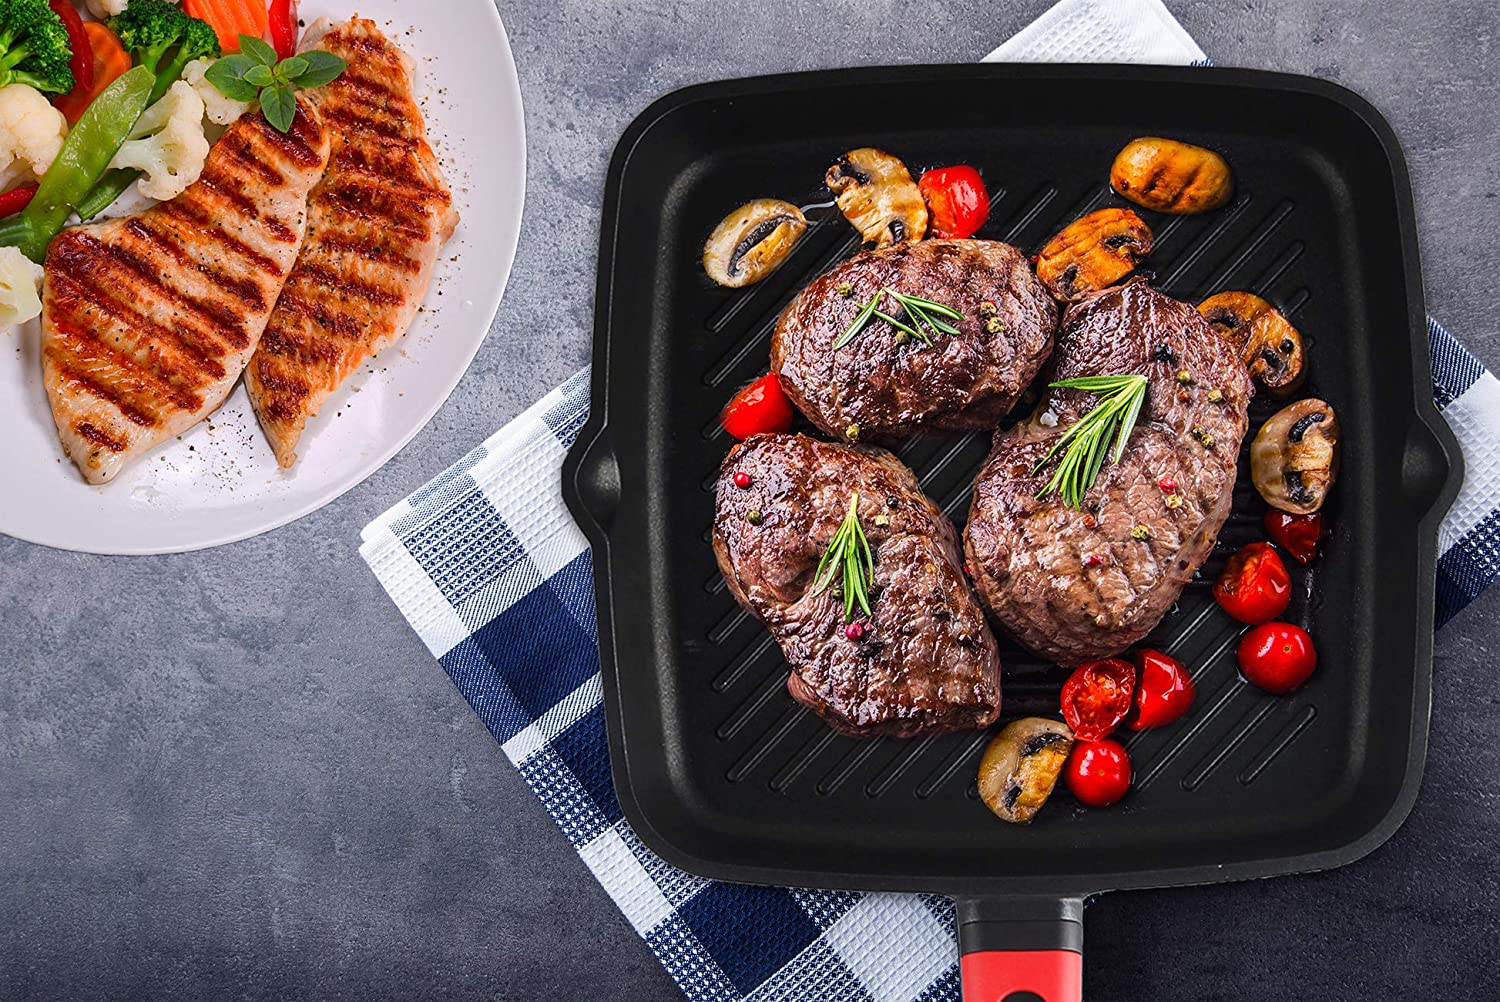 Griddle Pan Non Stick Induction Base with Detachable Handle 11-inch Square Pan Cast Aluminium Compatible with Gas /& Electric Hobs 28 cm